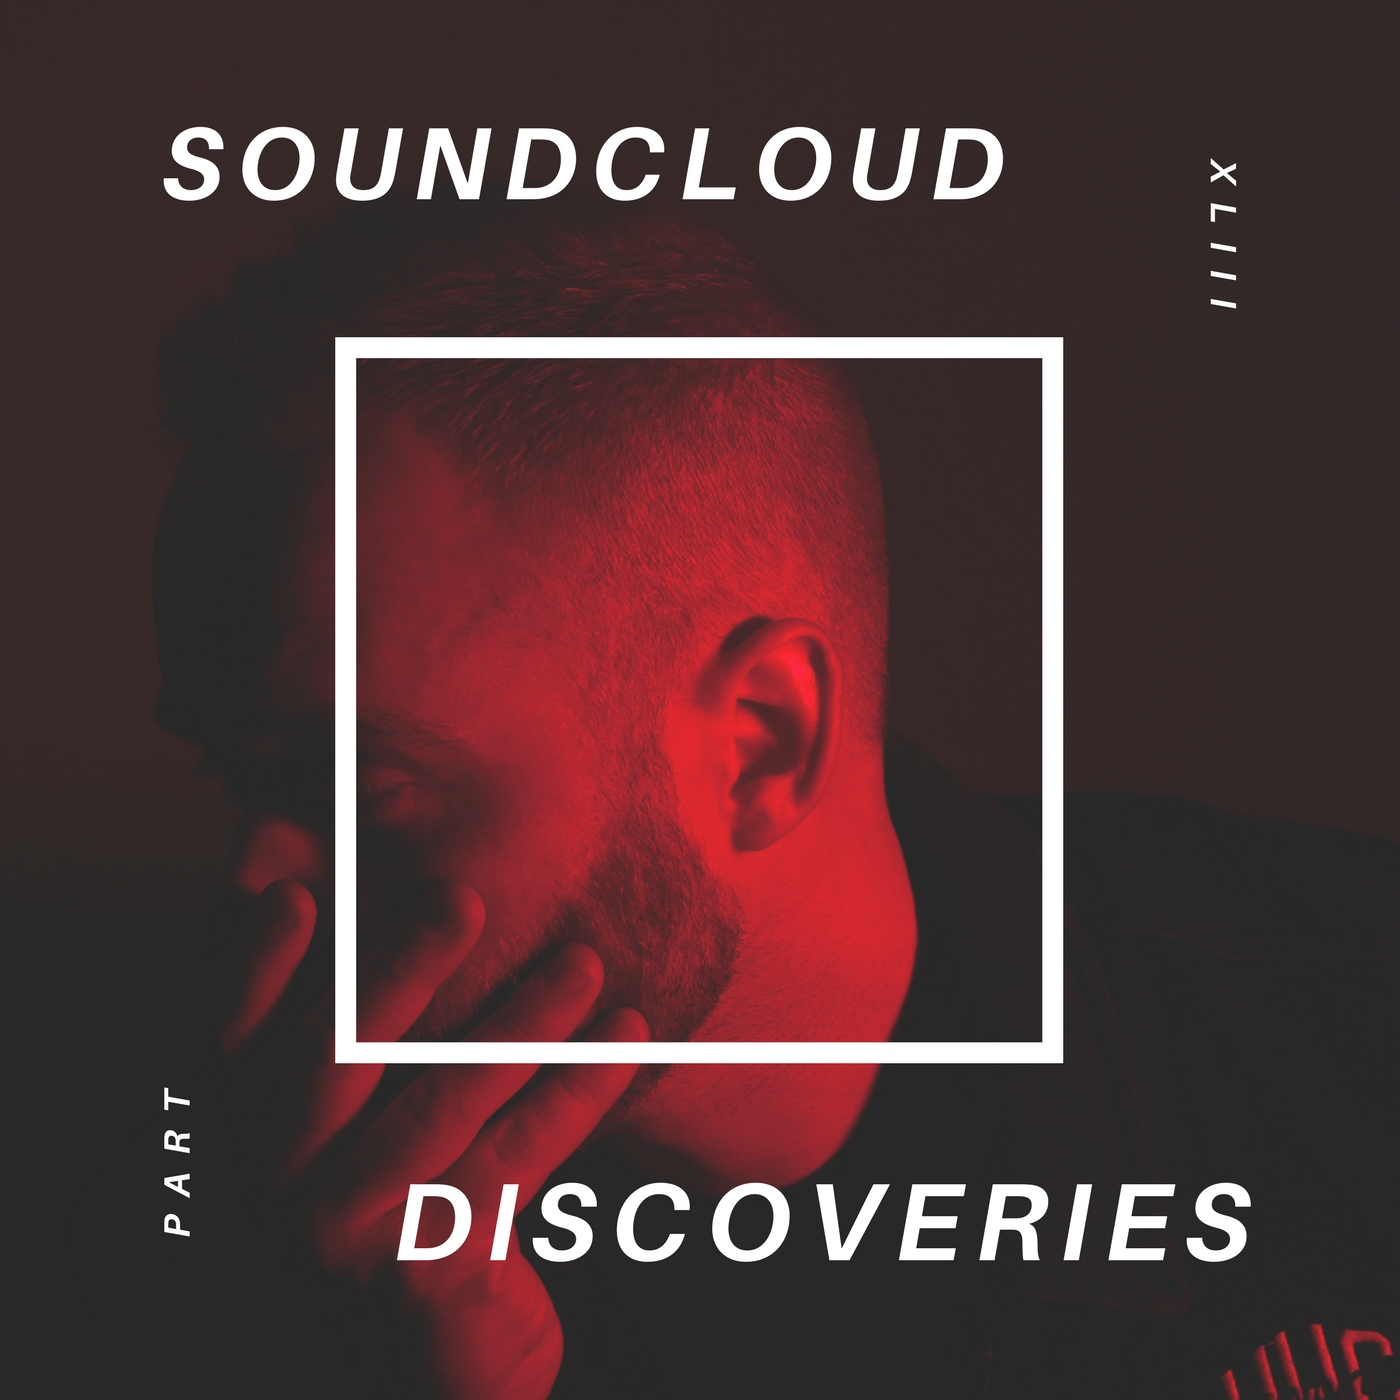 playlist-soundcloud discoveries part xliii-indie music-new music-indie pop-indie rock-indie folk-indietronica-electronica-music playlist-music blog-indie blog-wolfinasuit-wolf in a suit